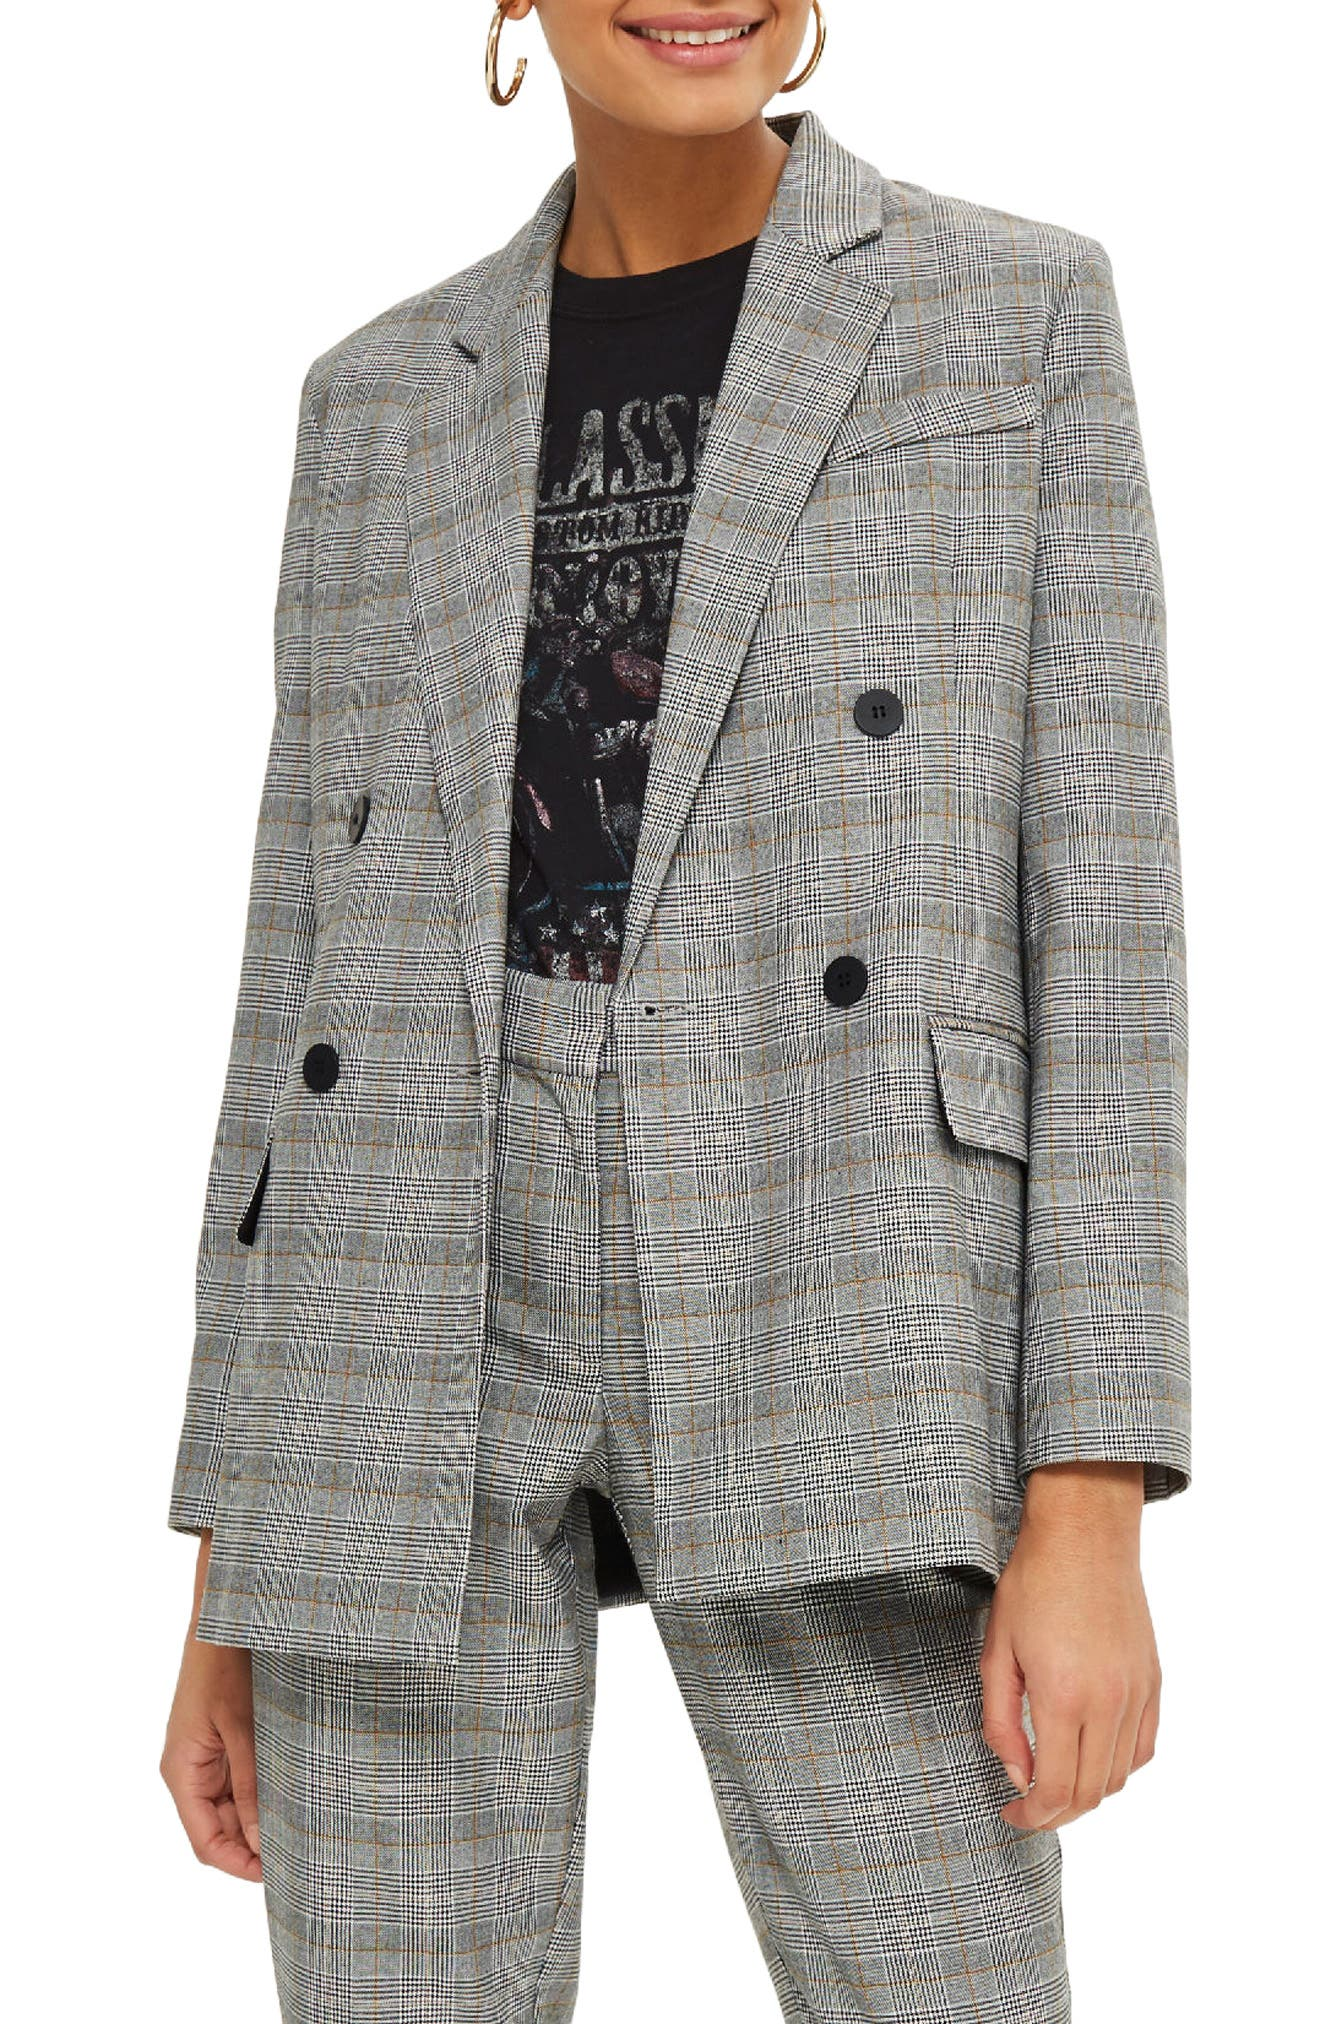 TOPSHOP, Double Breasted Check Jacket, Main thumbnail 1, color, 020